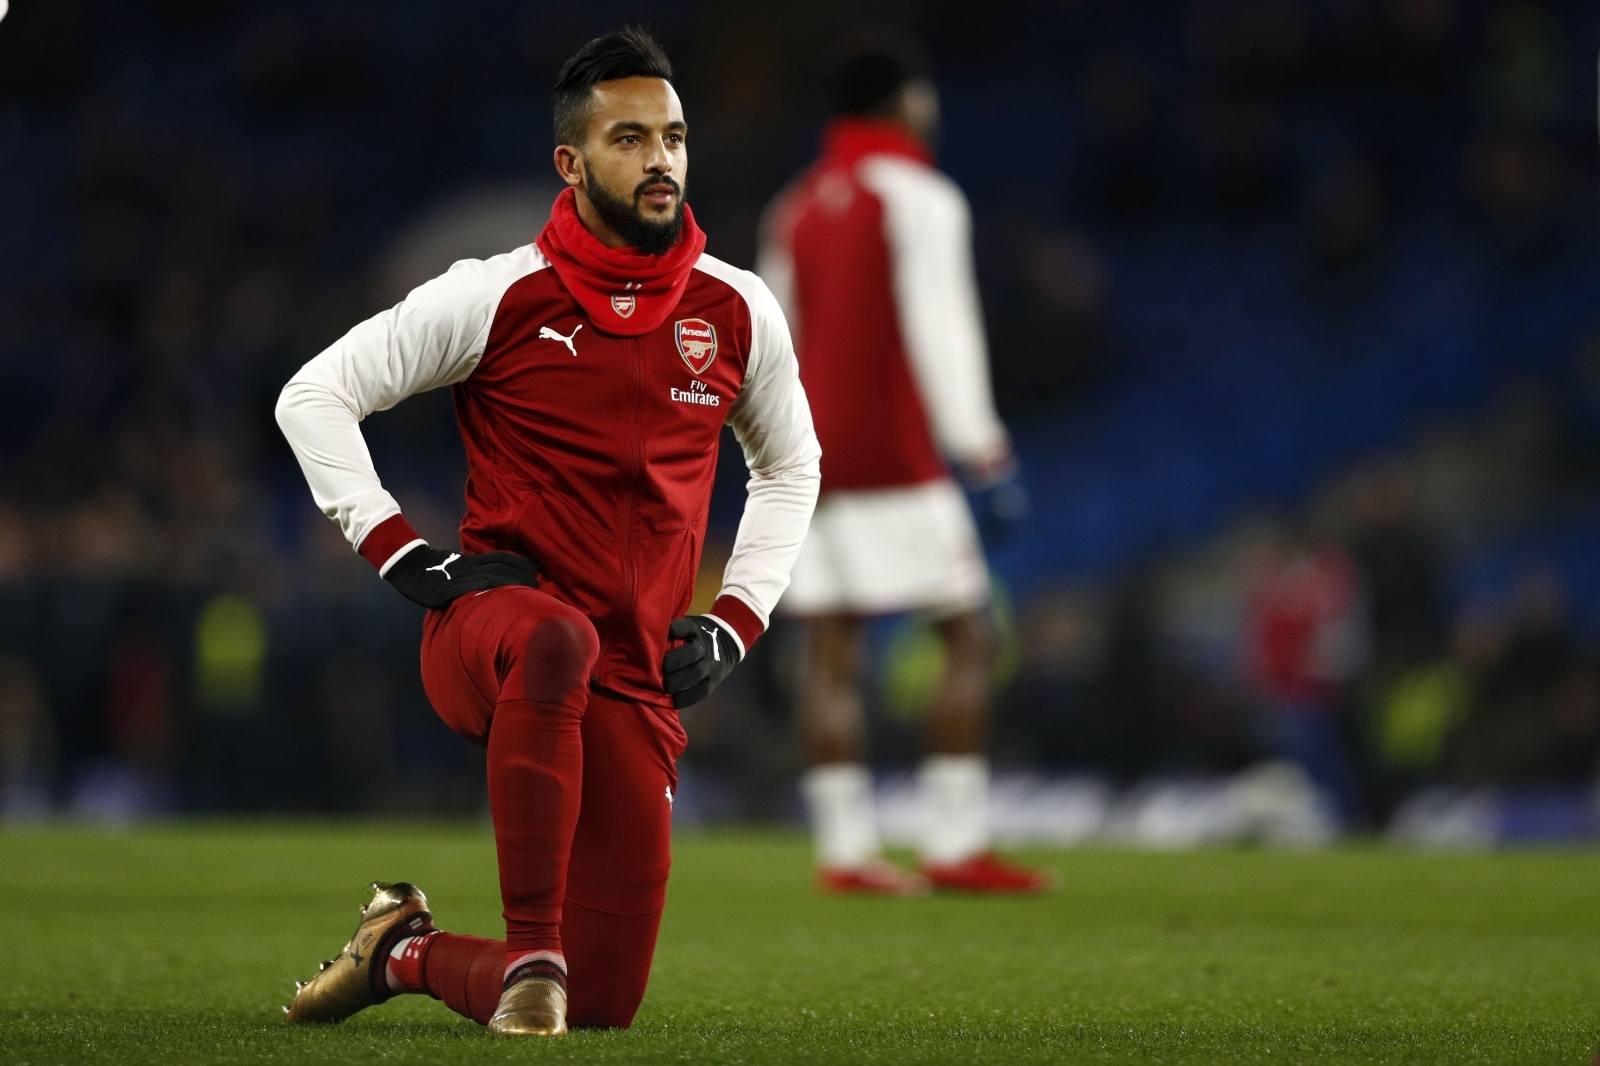 Wayne Rooney tempted me to move to Everton: Theo Walcott